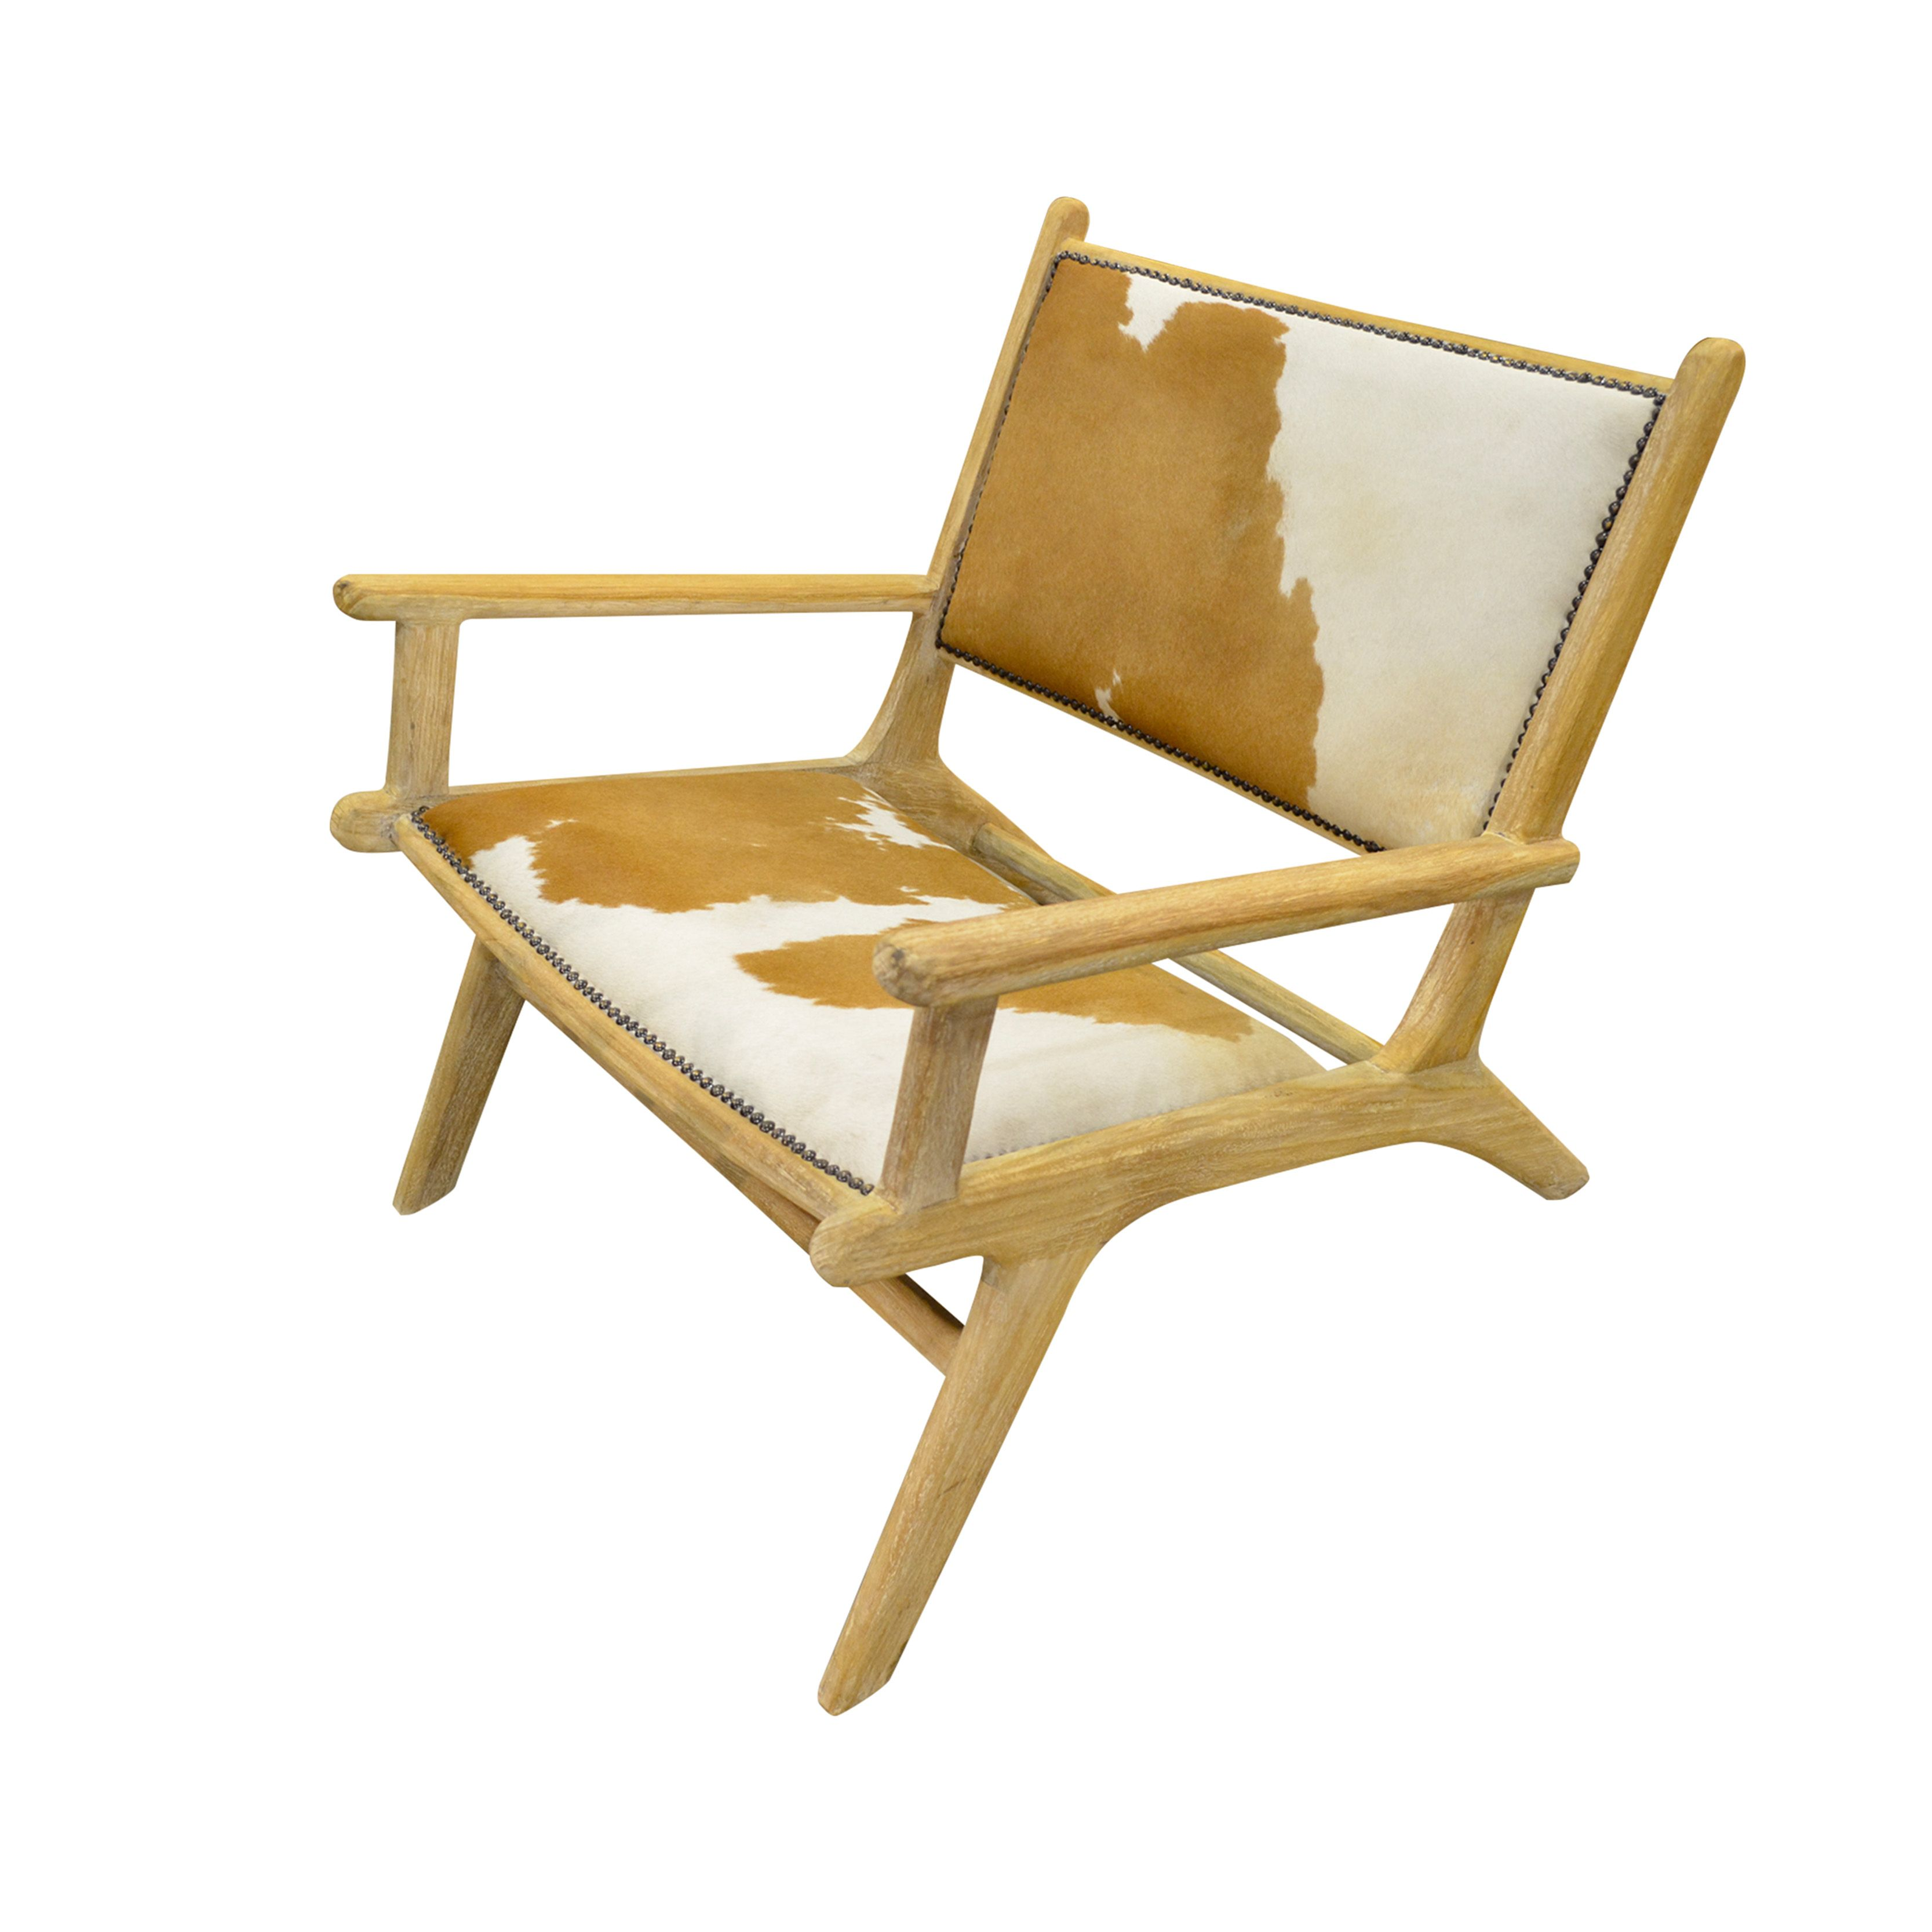 Lounge Chair Brown Teak The Proportional Form Of The Design Combined With The Tanned Cowhide Has Been A Pleasure For Those Who Treasure Comfort Seat Its A T